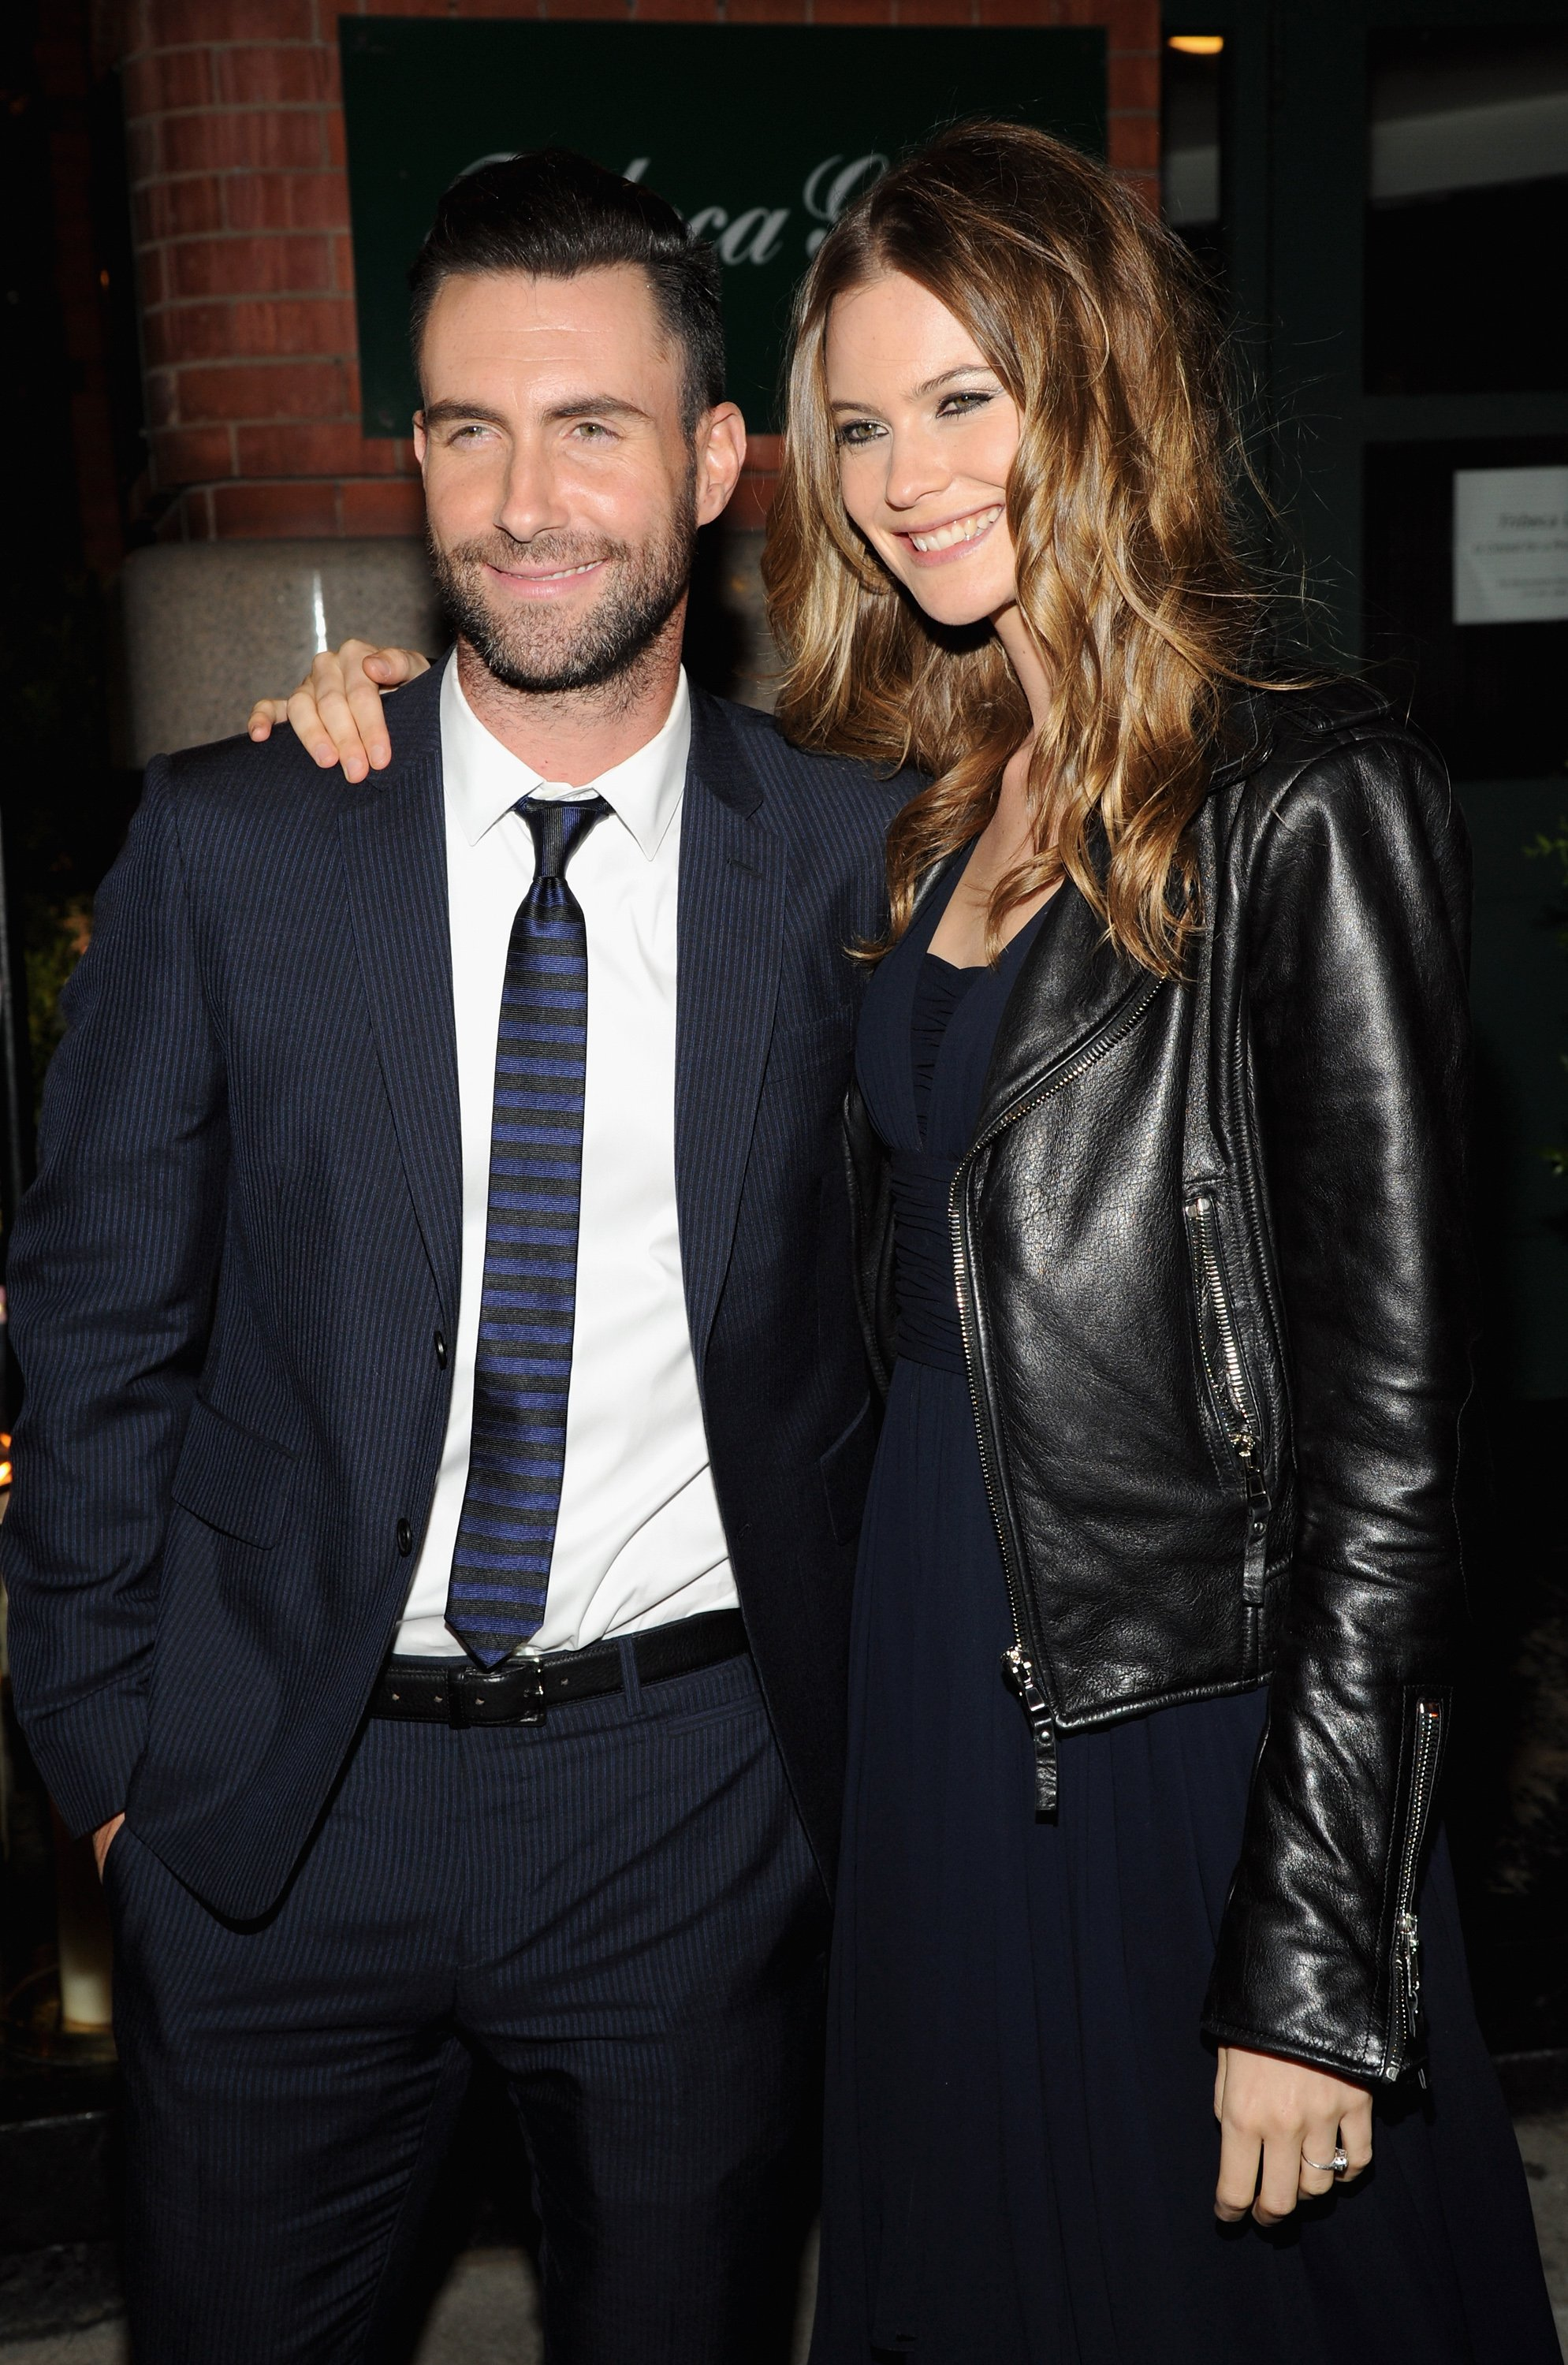 Adam Levine and Behati Prinsloo at the CHANEL Dinner in honor of the 2014 Tribeca Film Festival closing night film 'Begin Again' at Tribeca Grill on April 26, 2014 in New York City | Photo: Getty Images